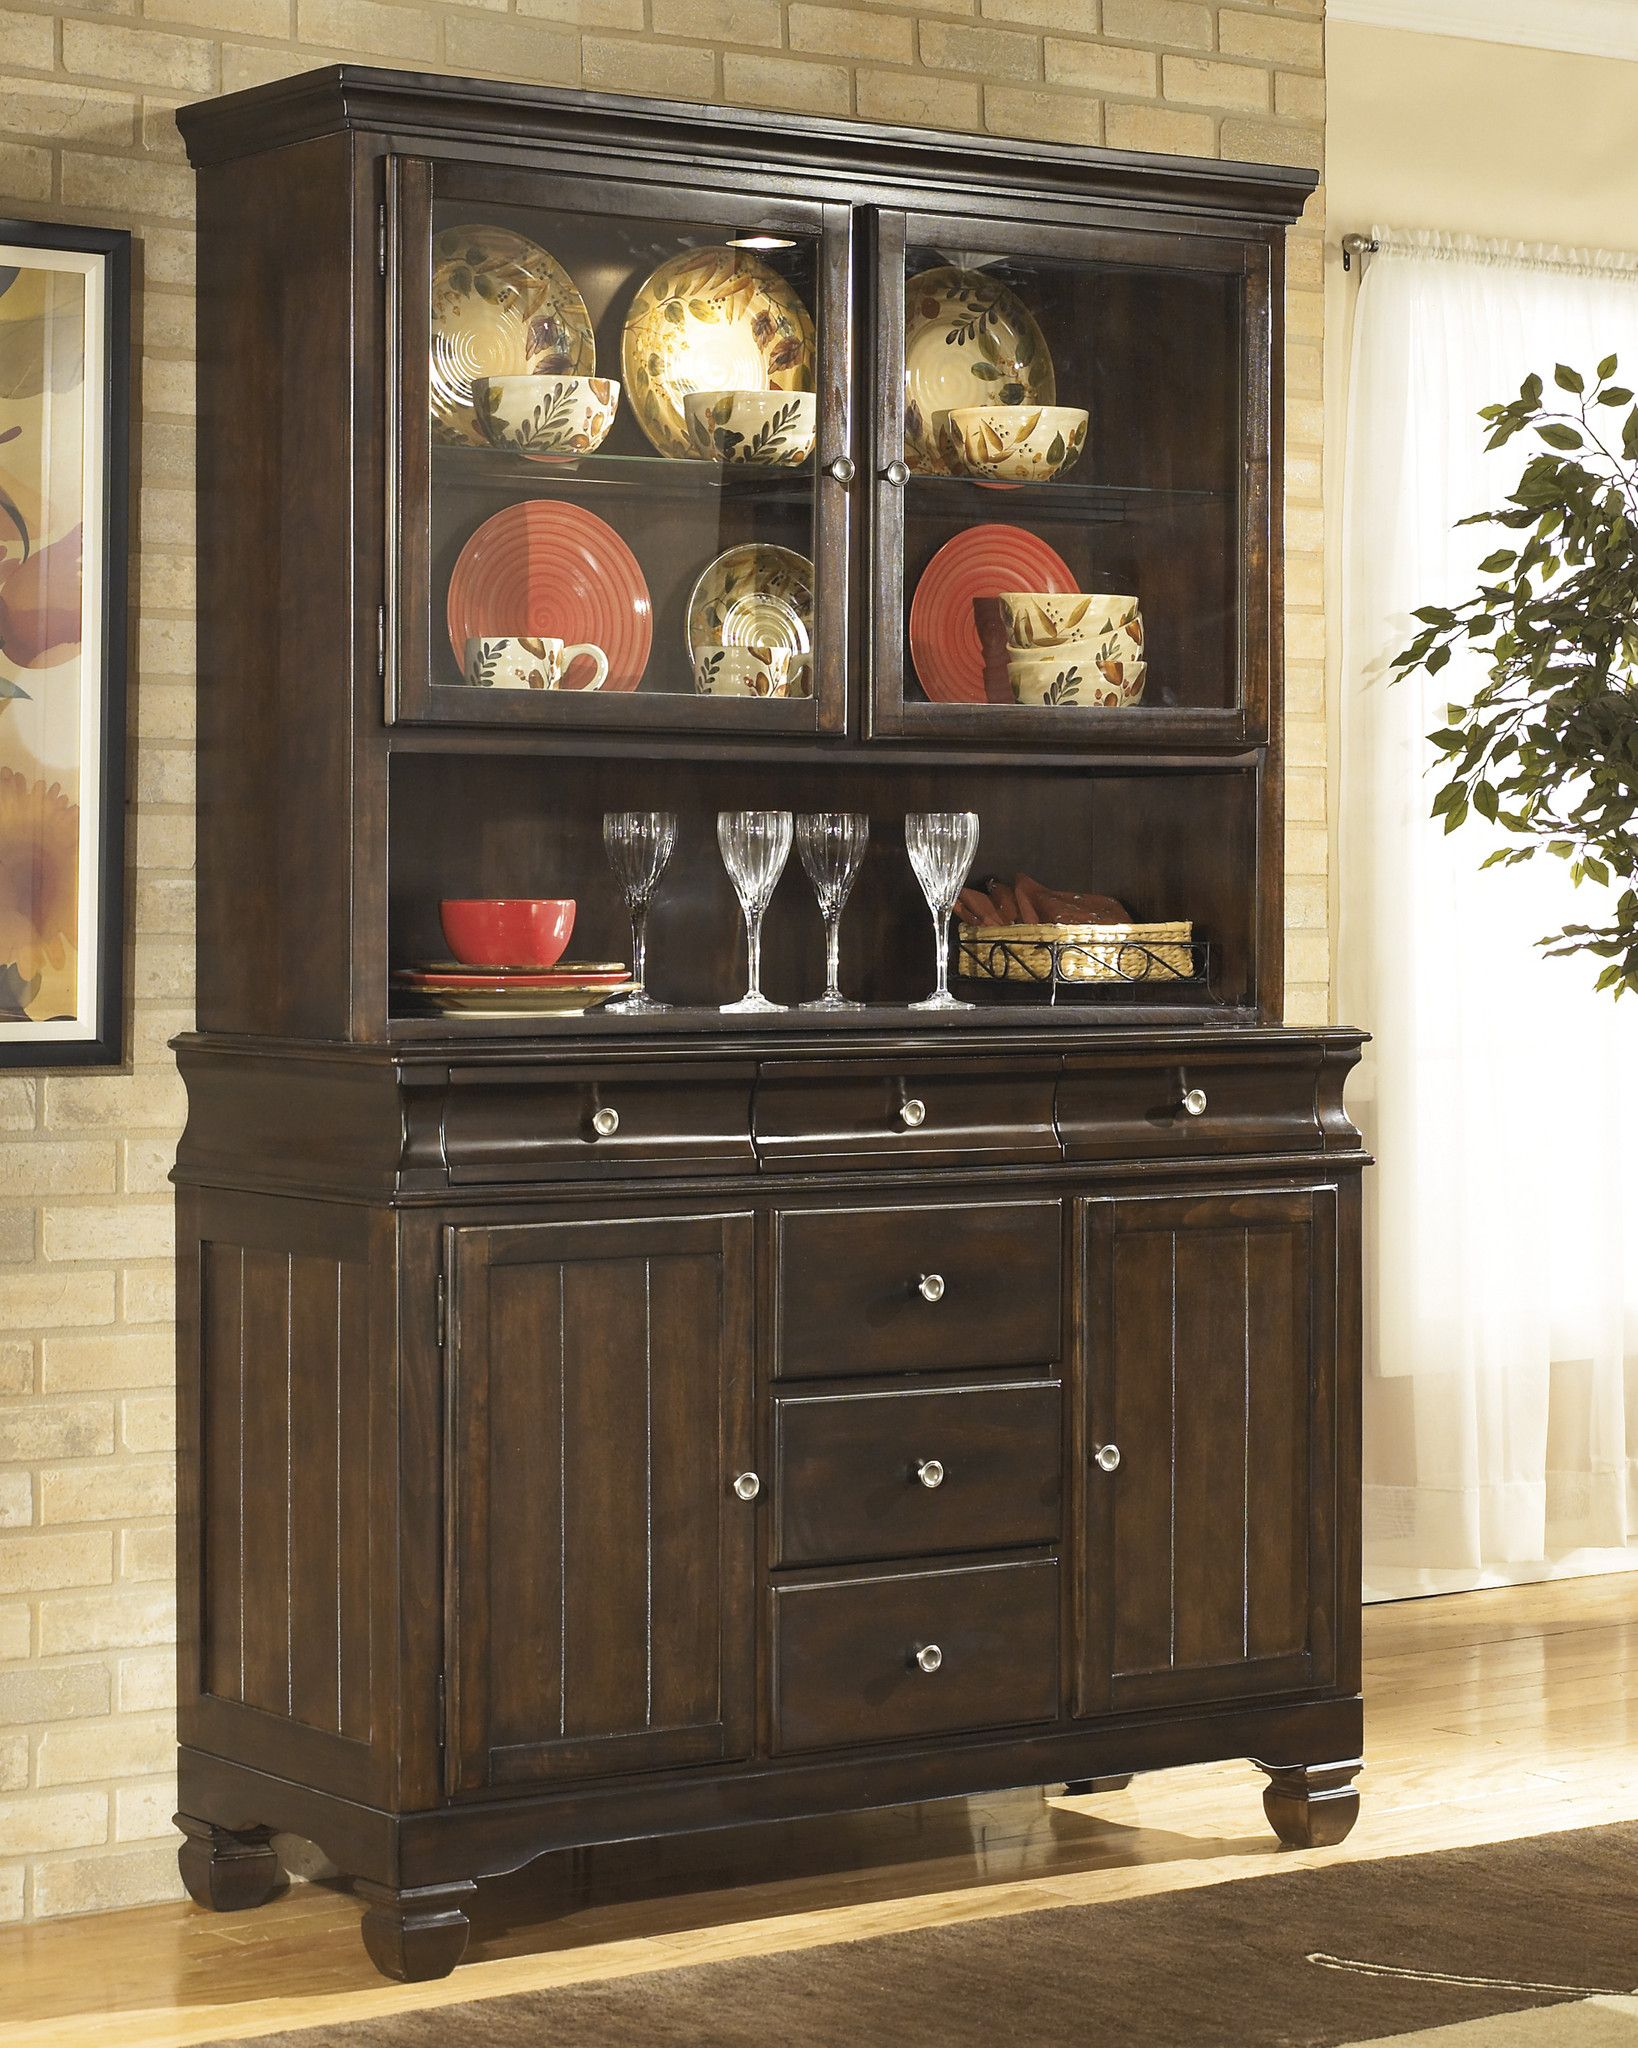 Hayley Dining Room Buffet | Products | Pinterest | Dining room ...